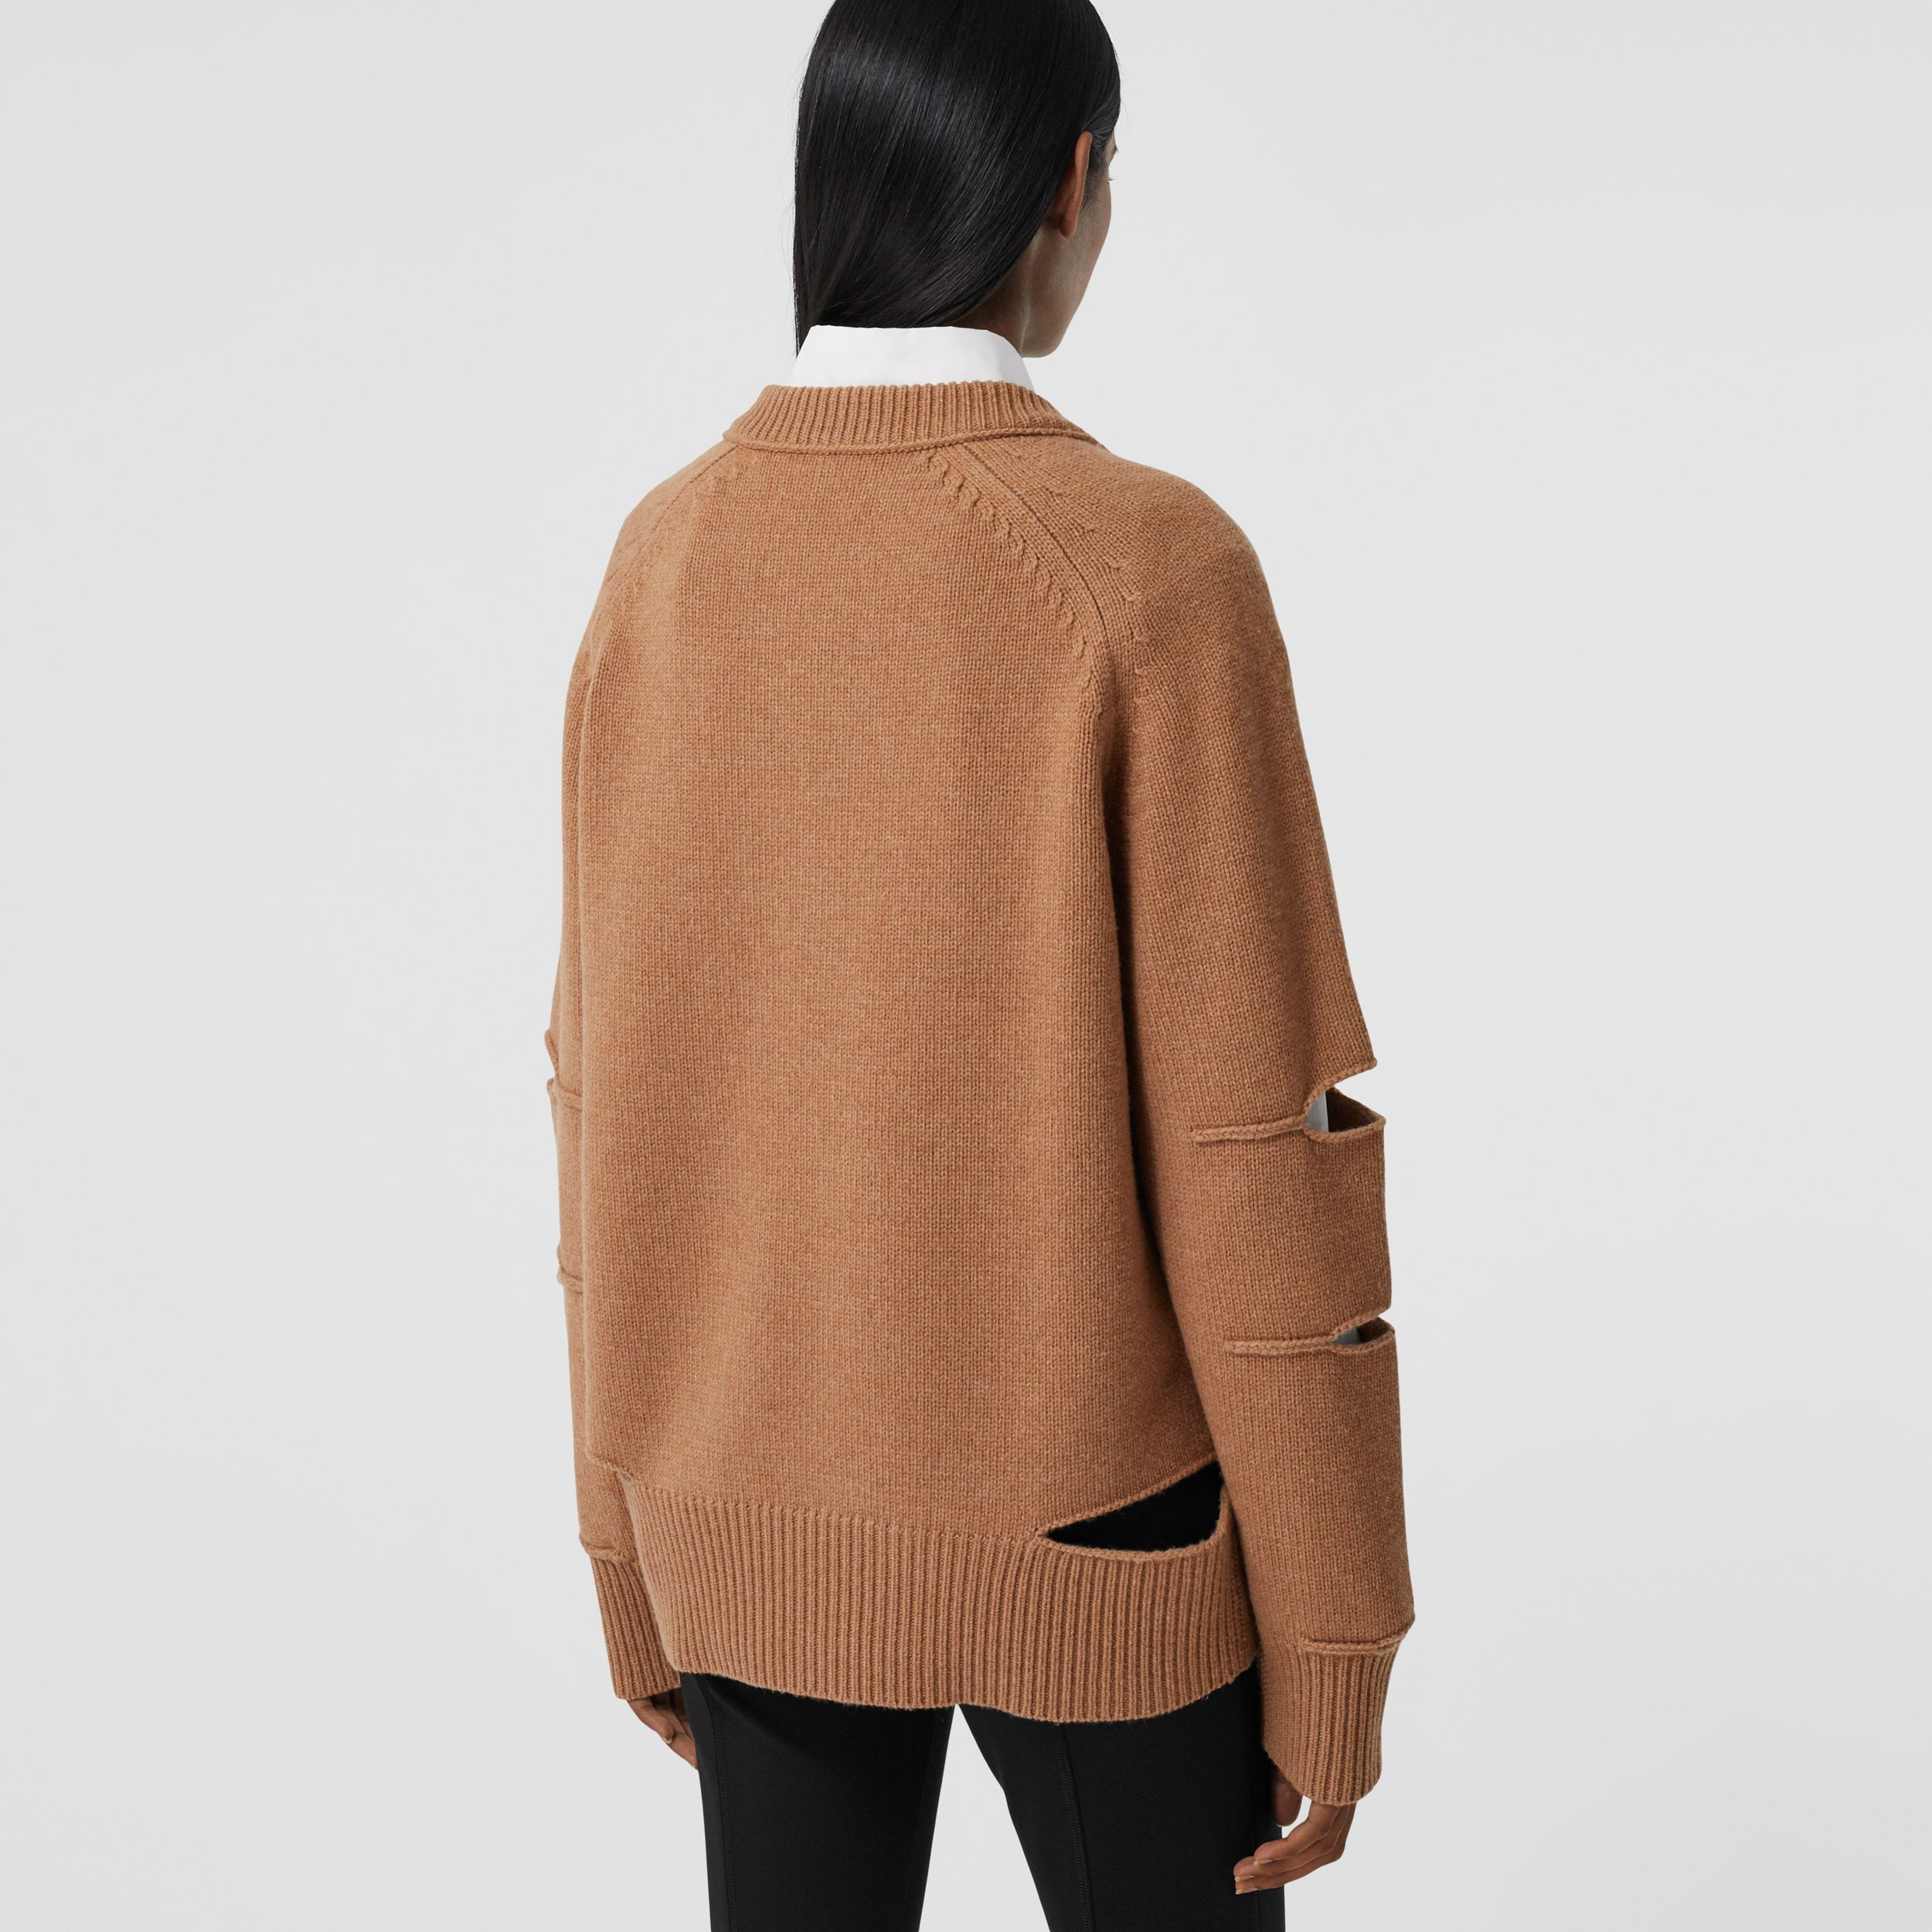 Cut-out Detail Argyle Intarsia Wool Cashmere Sweater in Camel - Women | Burberry Australia - 3